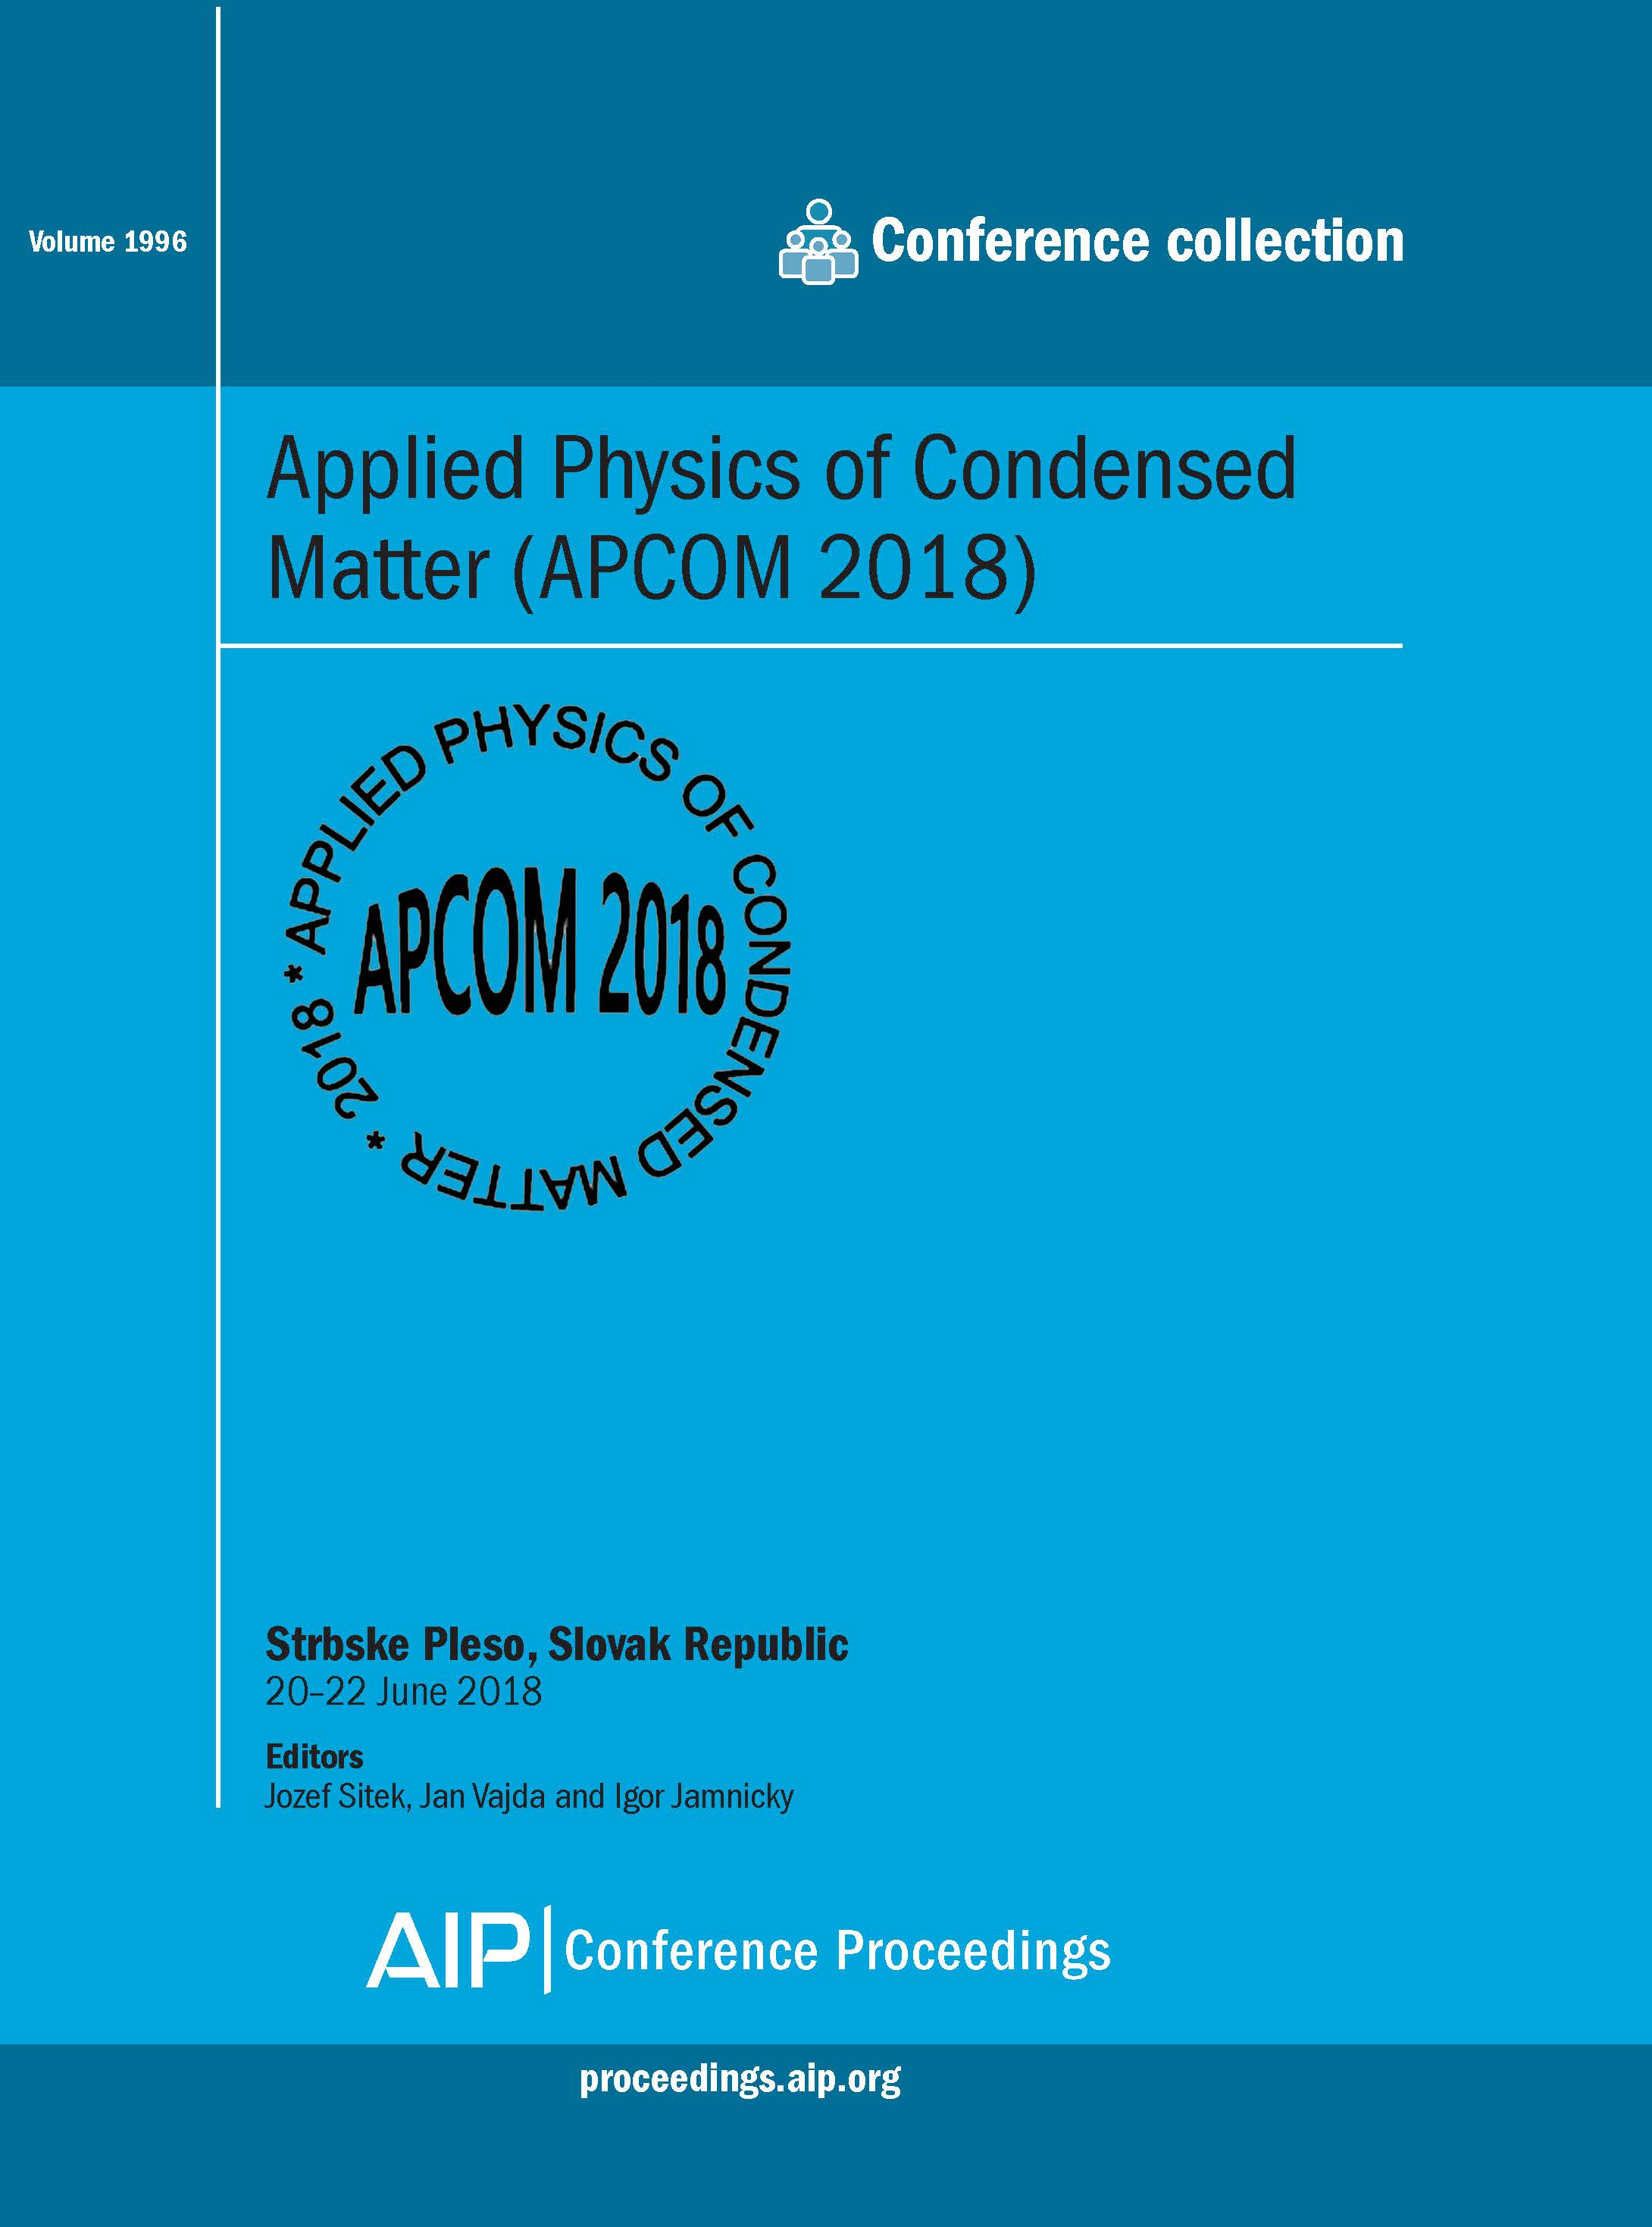 Volume 1996: Applied Physics of Condensed Matter (APCOM 2018) | AIP